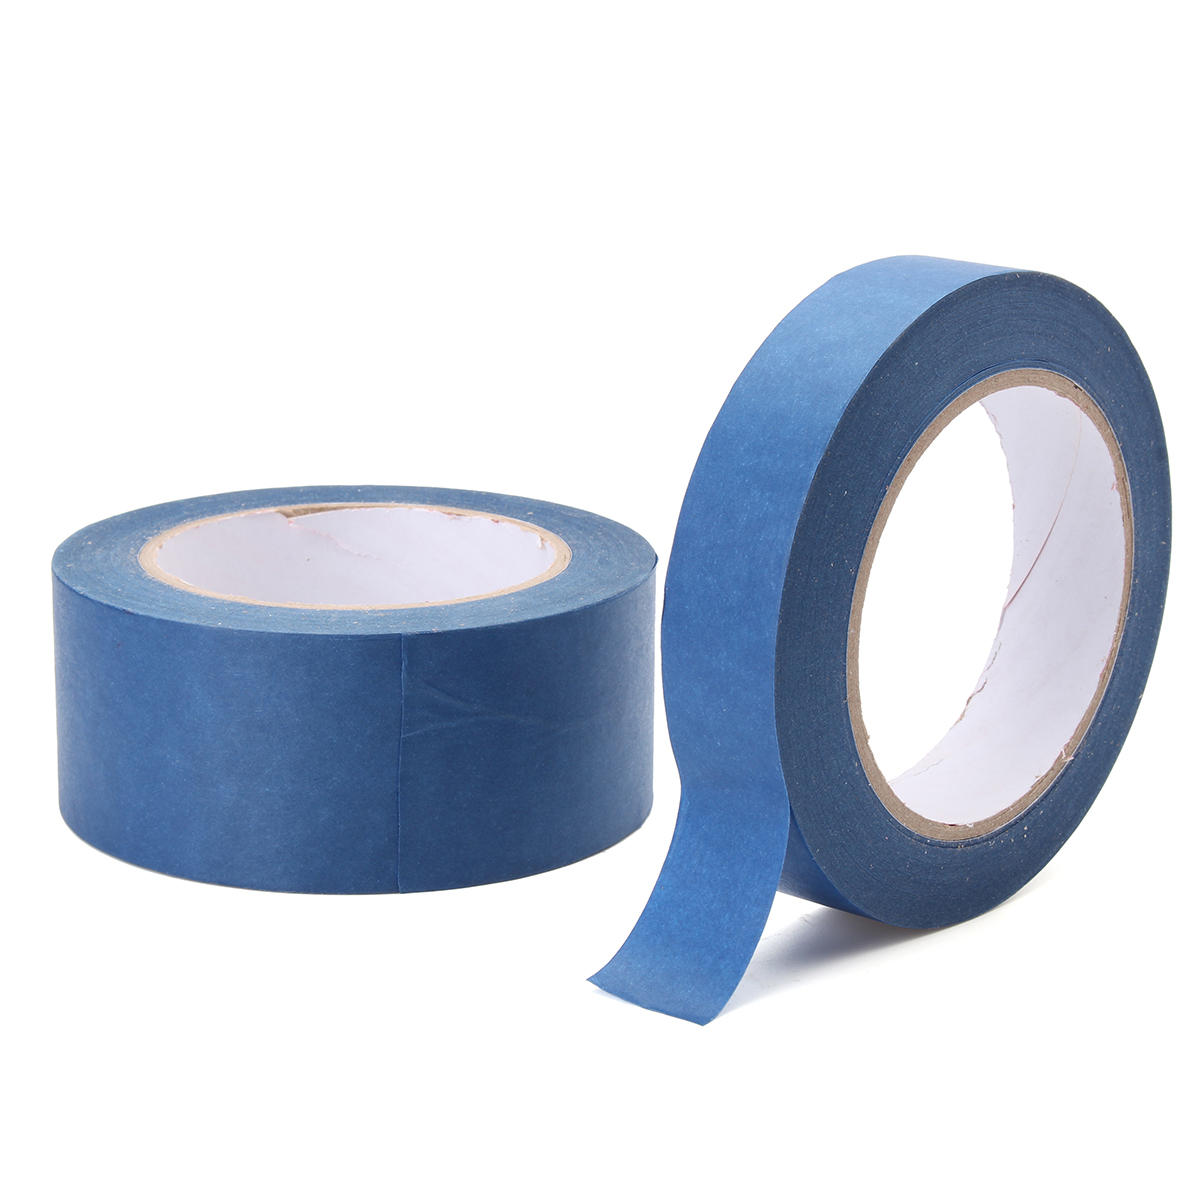 50m Blue Paint Tape Painter Masking Adhesive For Car House Painting 24 48mm Banggood Sold Out